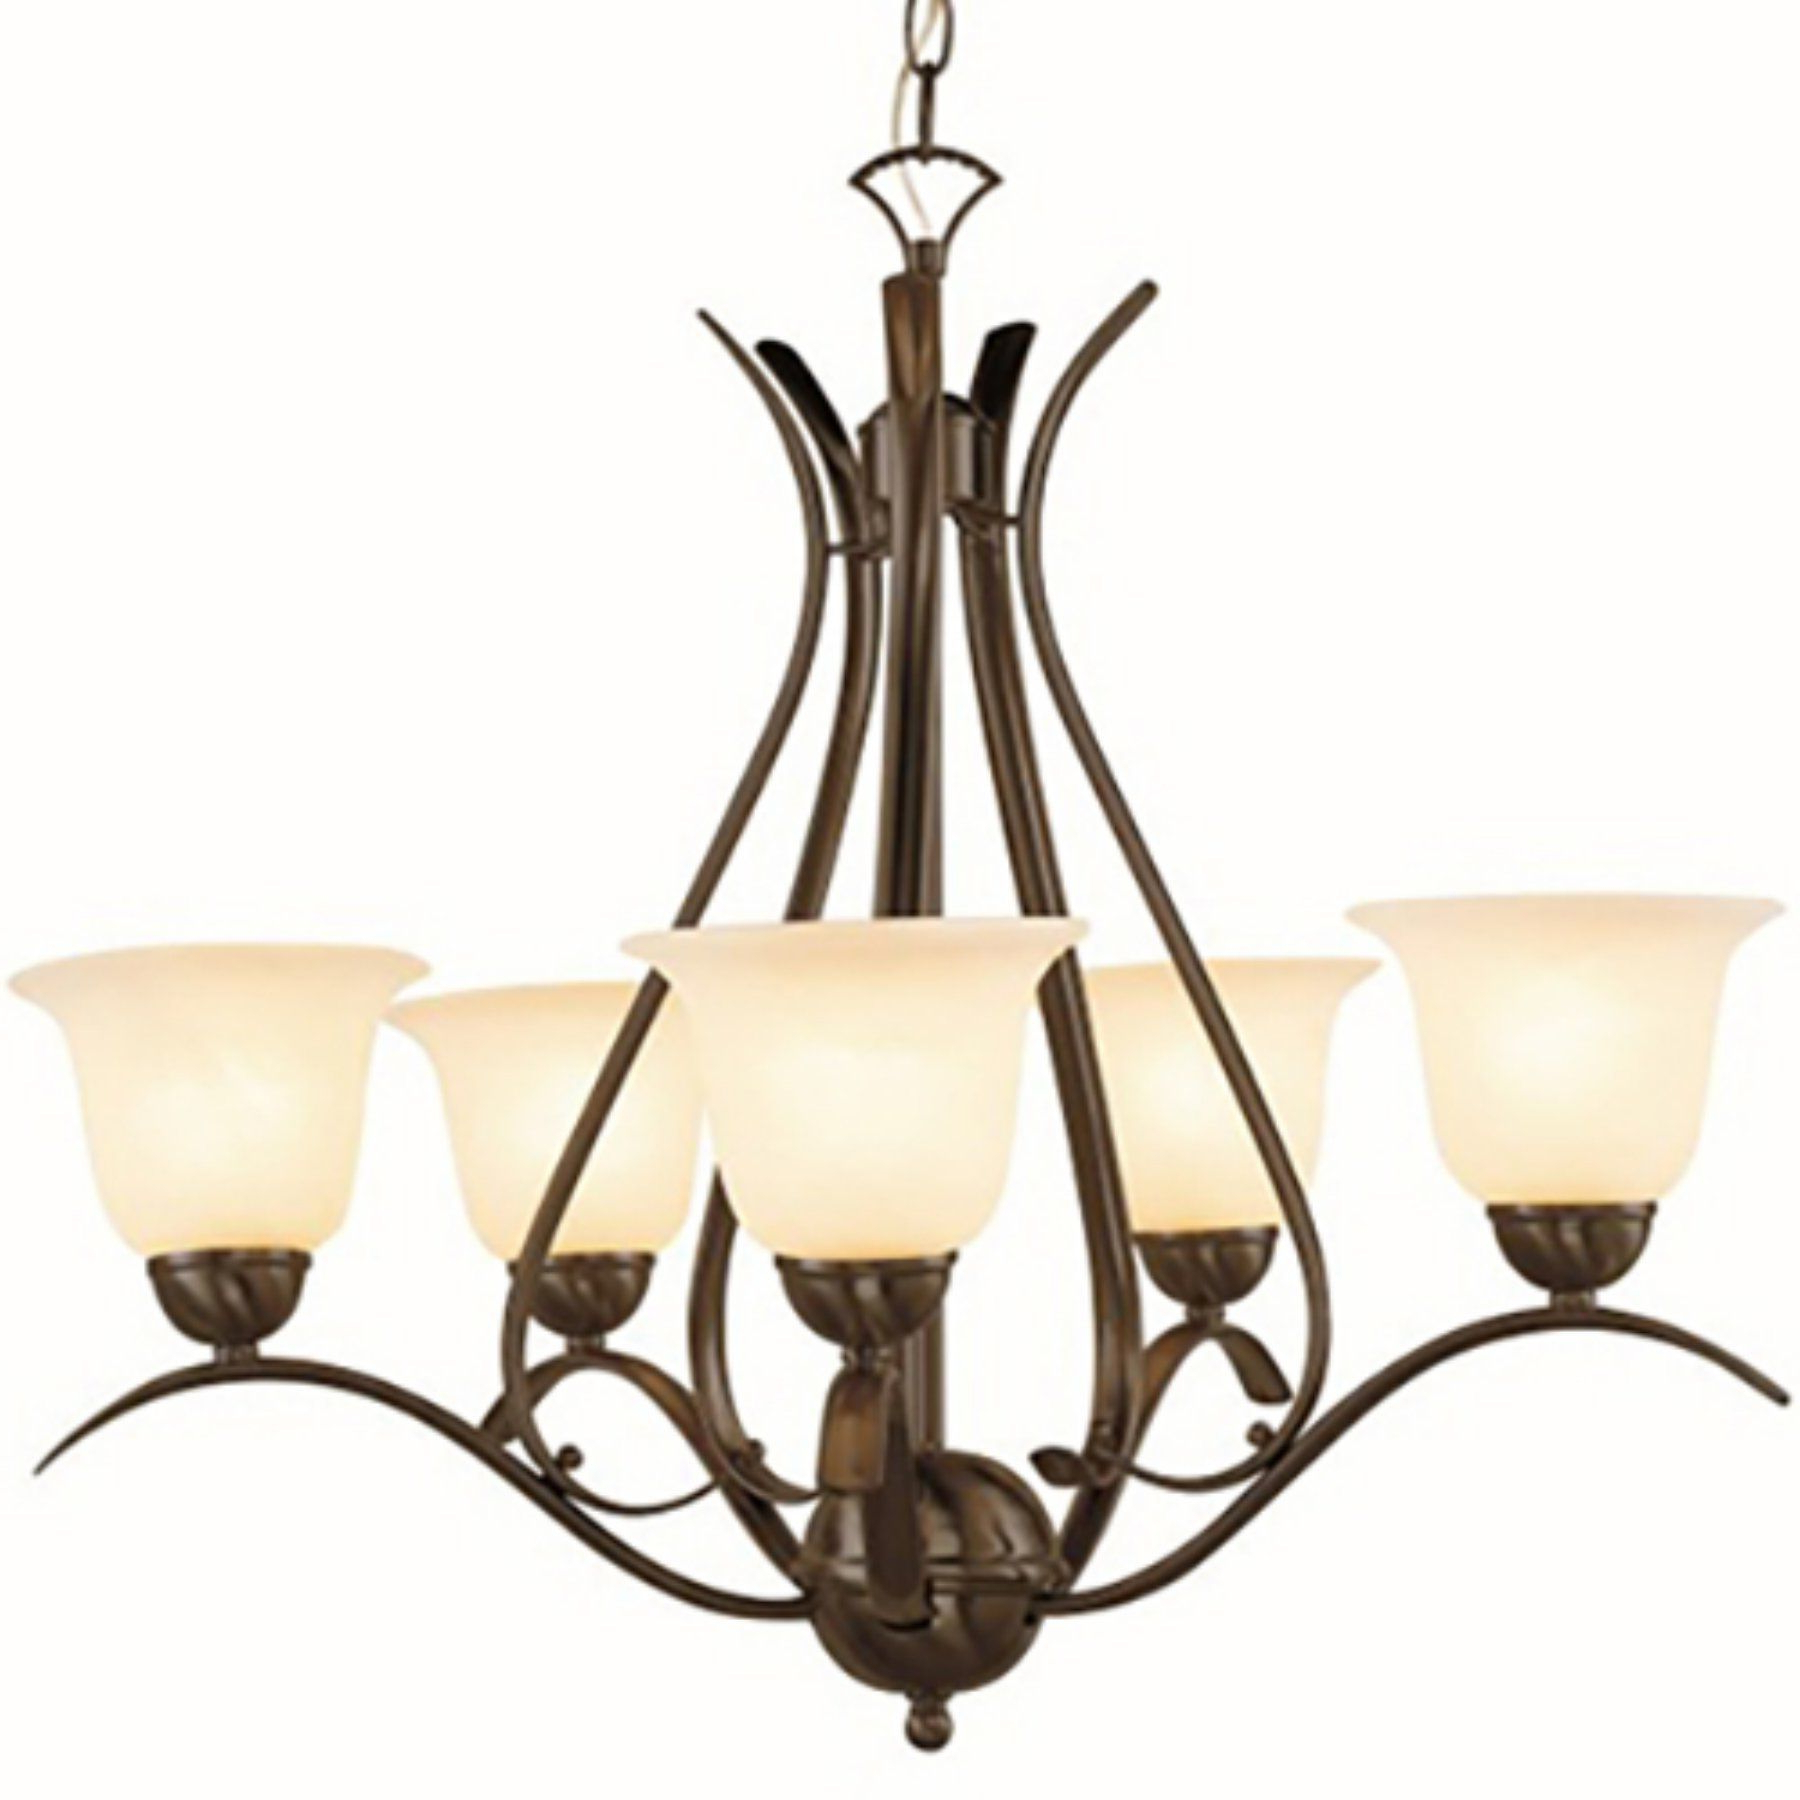 Trans Globe Lighting Aspen Pl 9285 Chandelier – Pl 9285 Rob Pertaining To 2019 Hayden 5 Light Shaded Chandeliers (View 17 of 20)